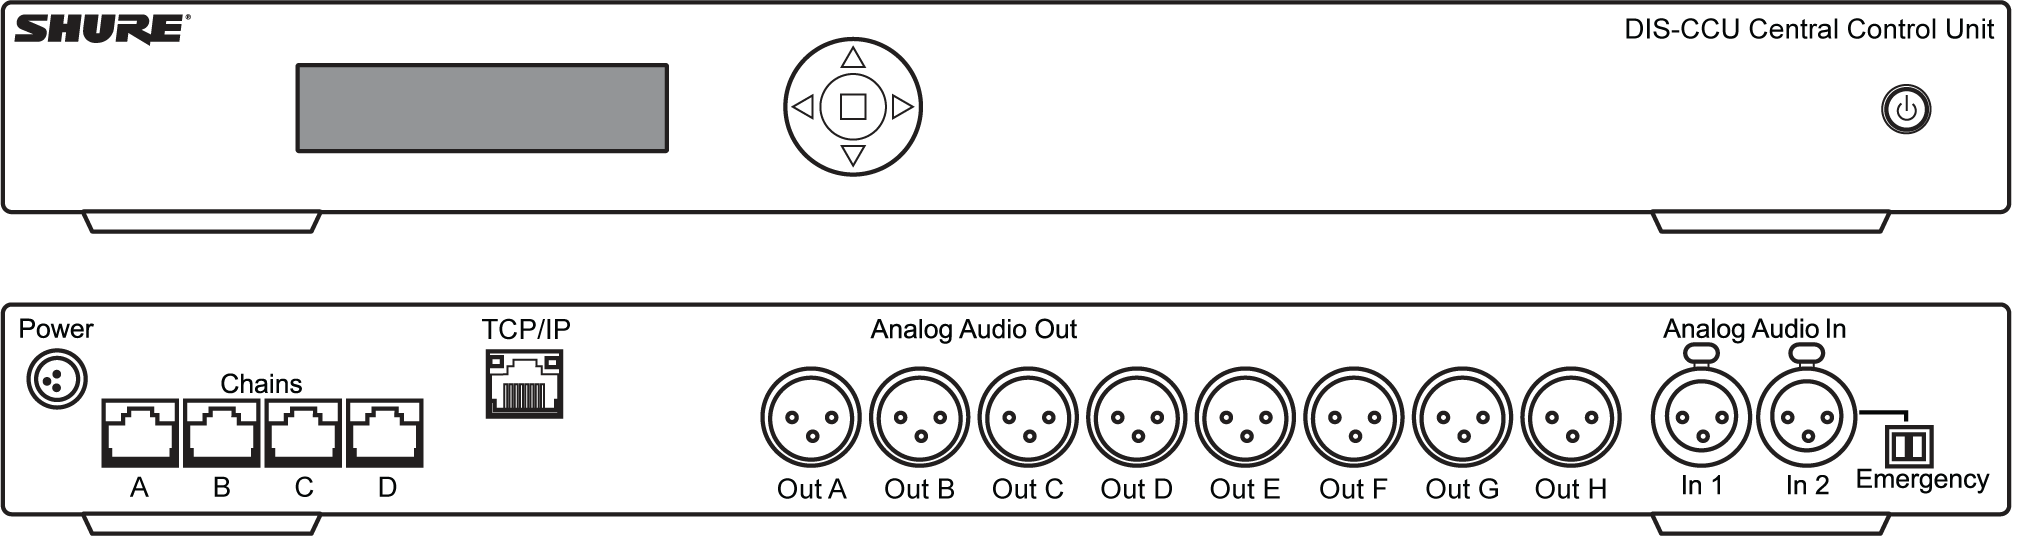 Shure Publications   User Guides   MXC